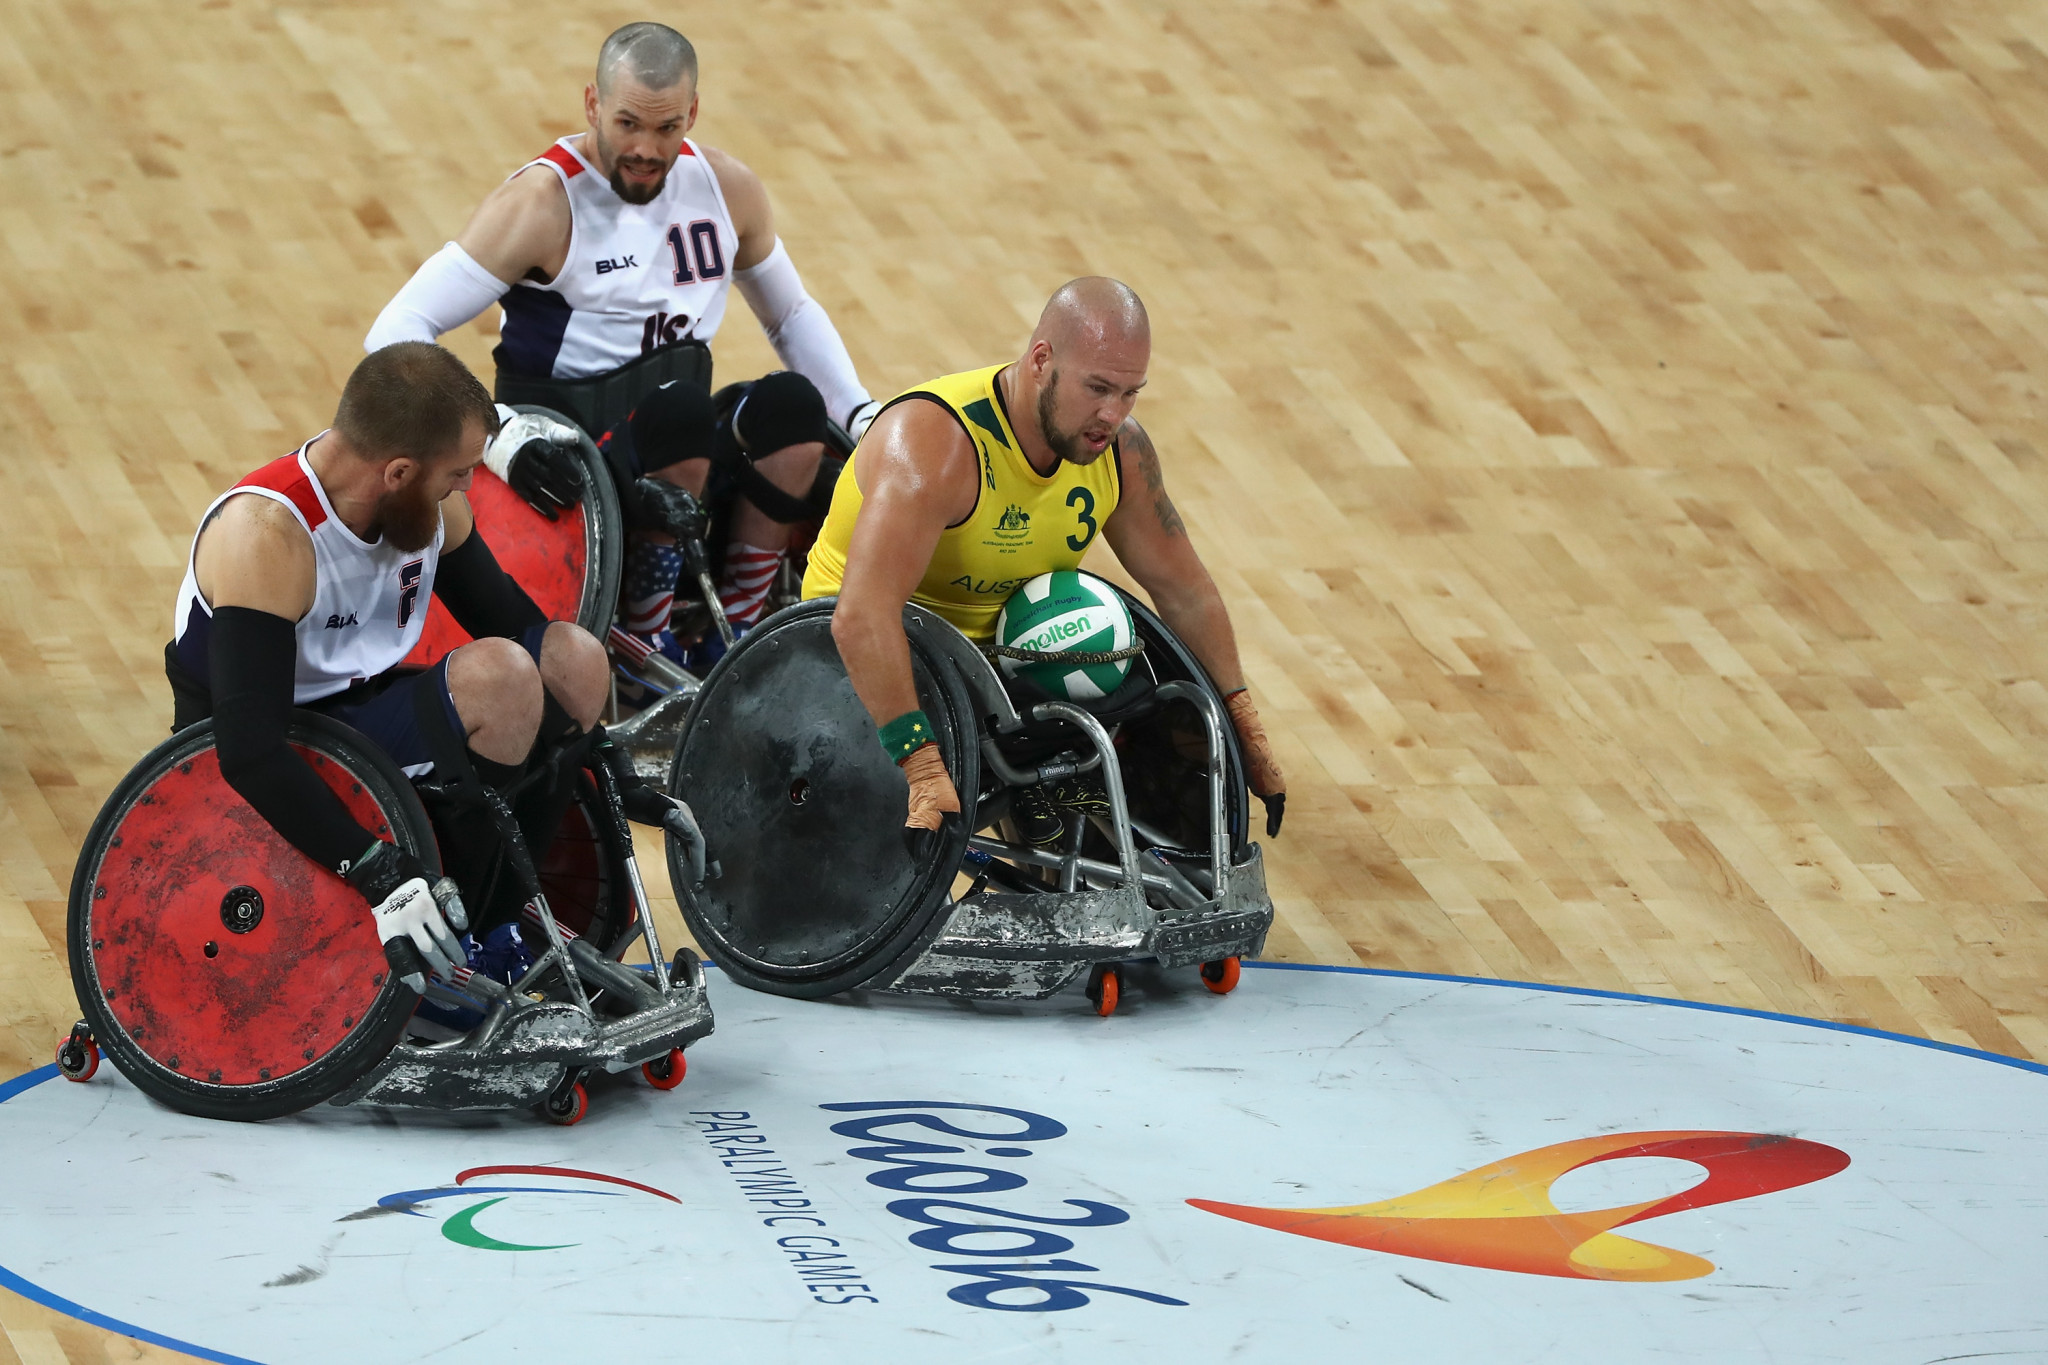 IWRF launches athlete welfare section on website to provide key resources